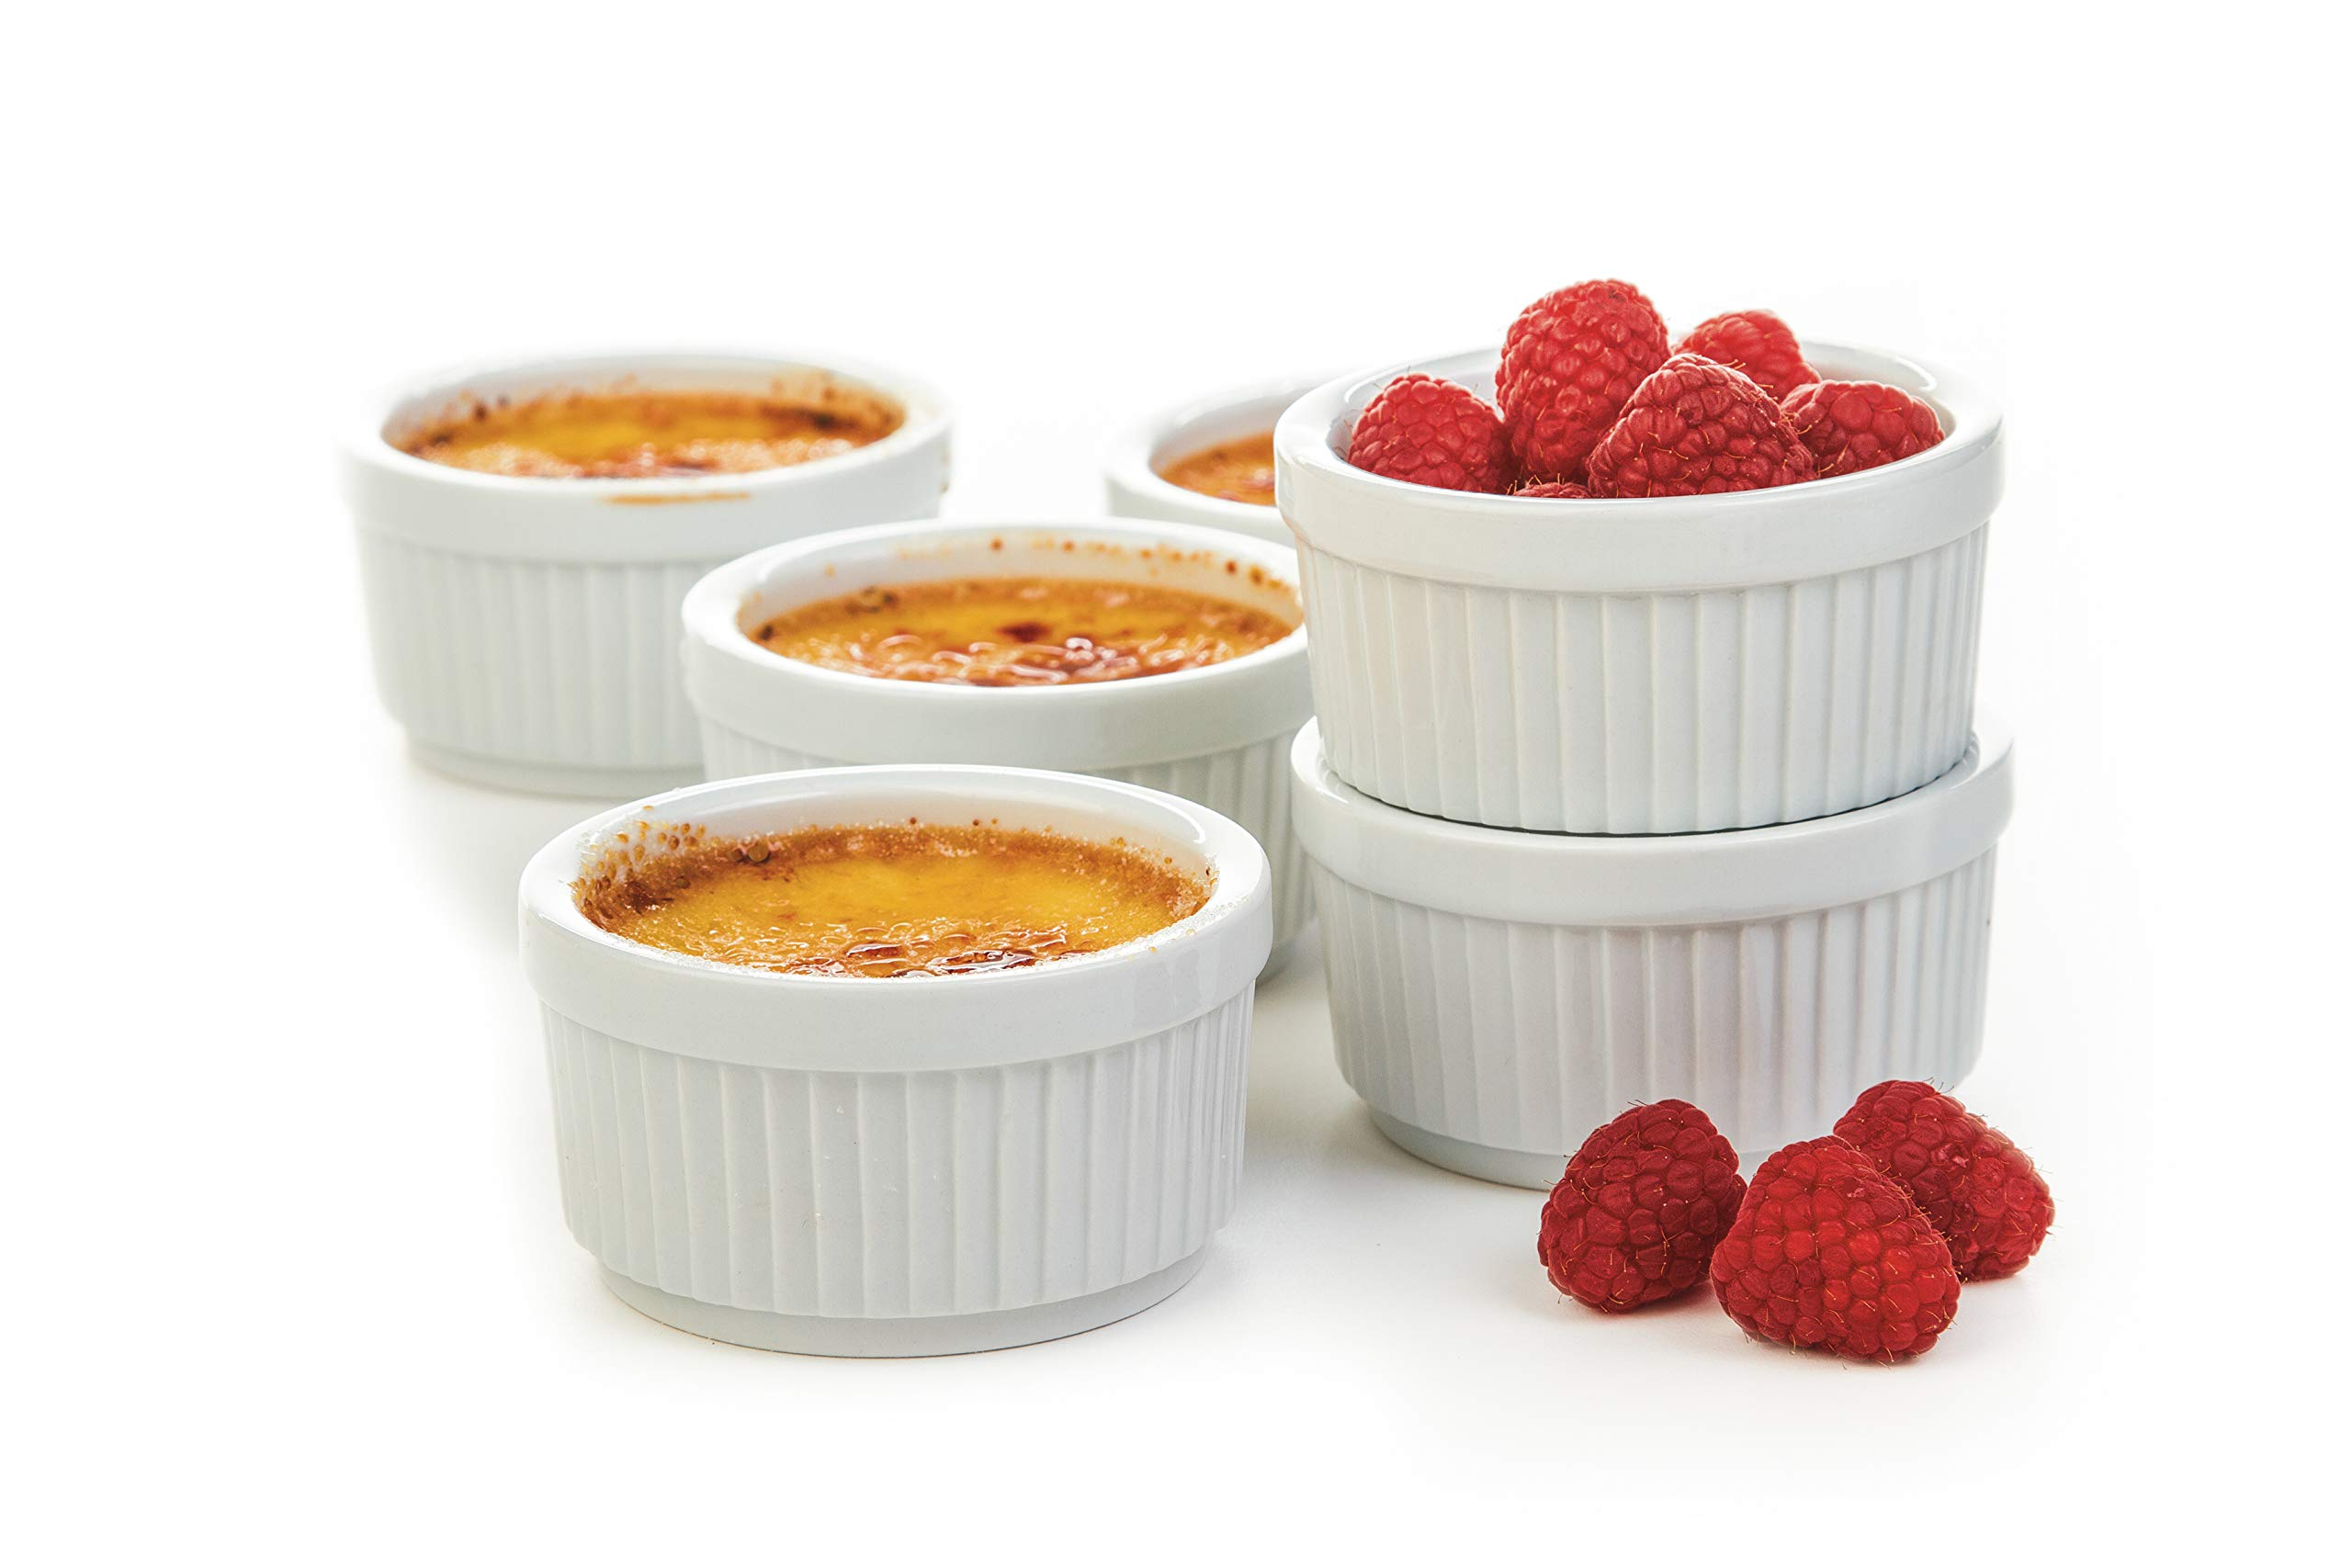 Prepworks by Progressive Porcelain Stacking Ramekins-Set of 6 CRR-6 for Baking, Crème Brulee Dishes, Souffle, Flan Pan Sauce, Custard, Pudding Cups, Dipping Bowls by Prepworks from Progressive